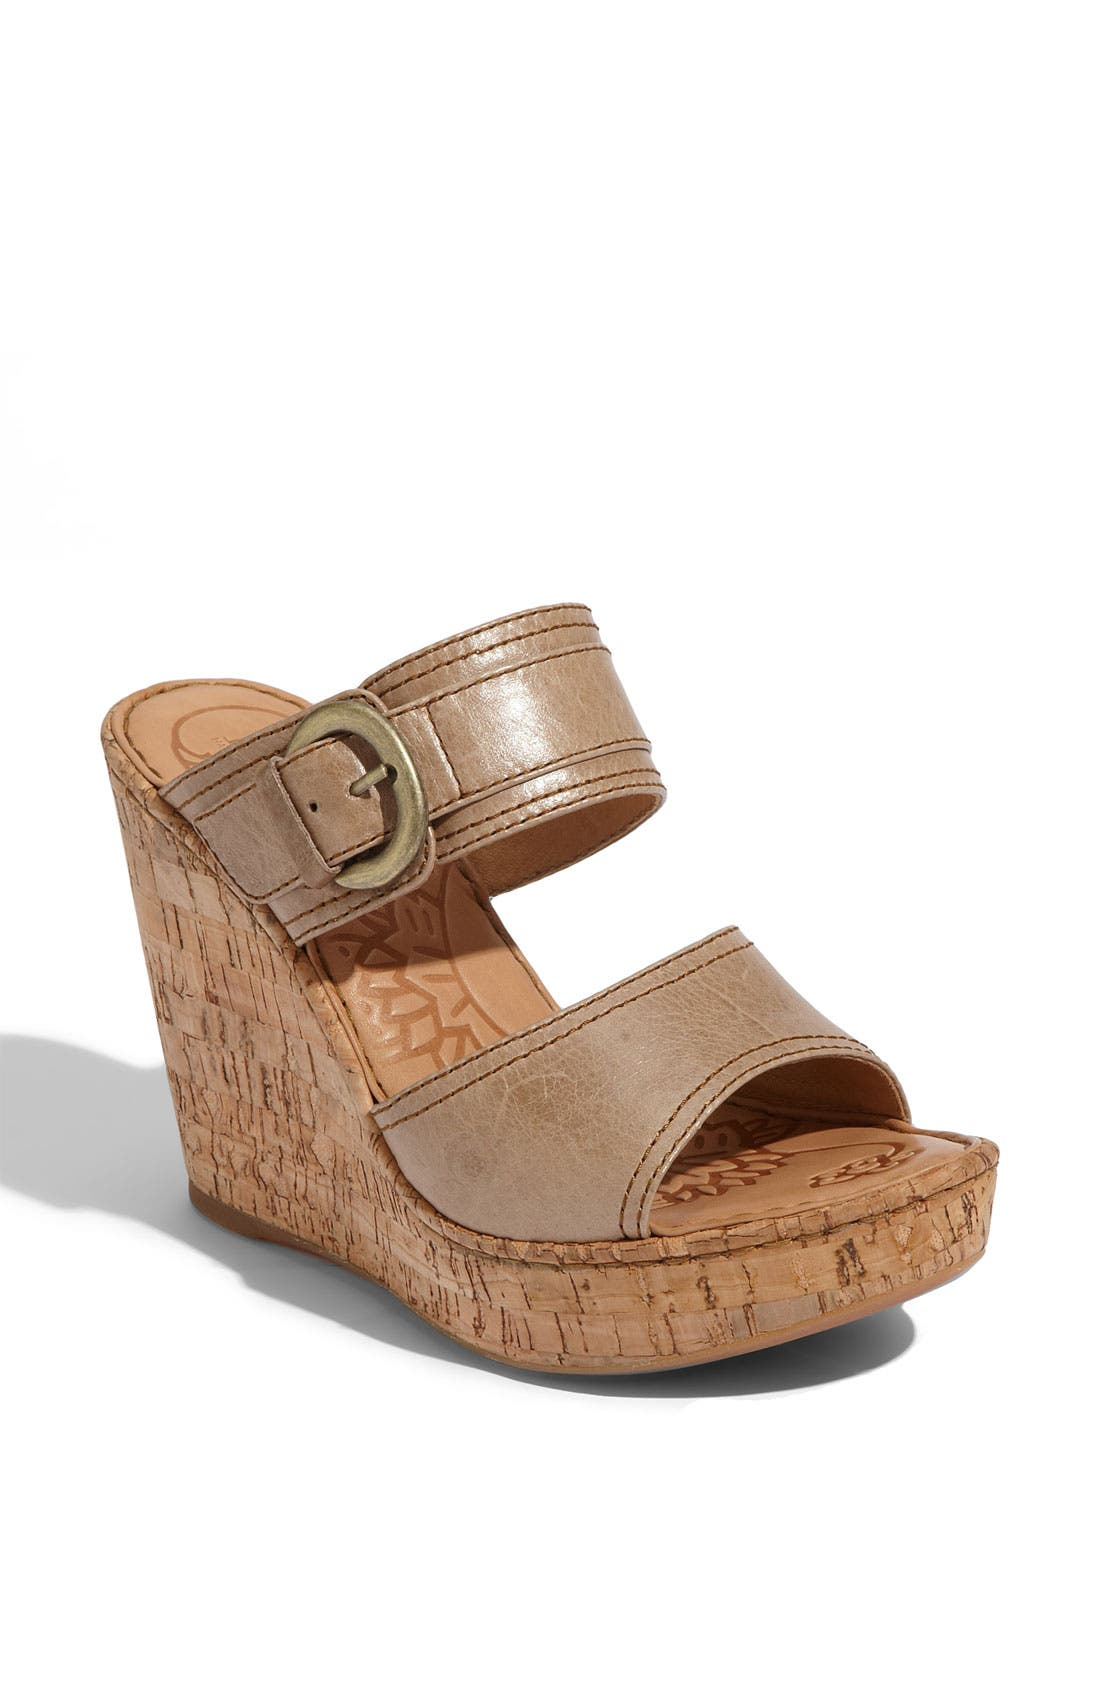 Alternate Image 1 Selected - Børn 'Zee' Wedge Sandal (Exclusive)